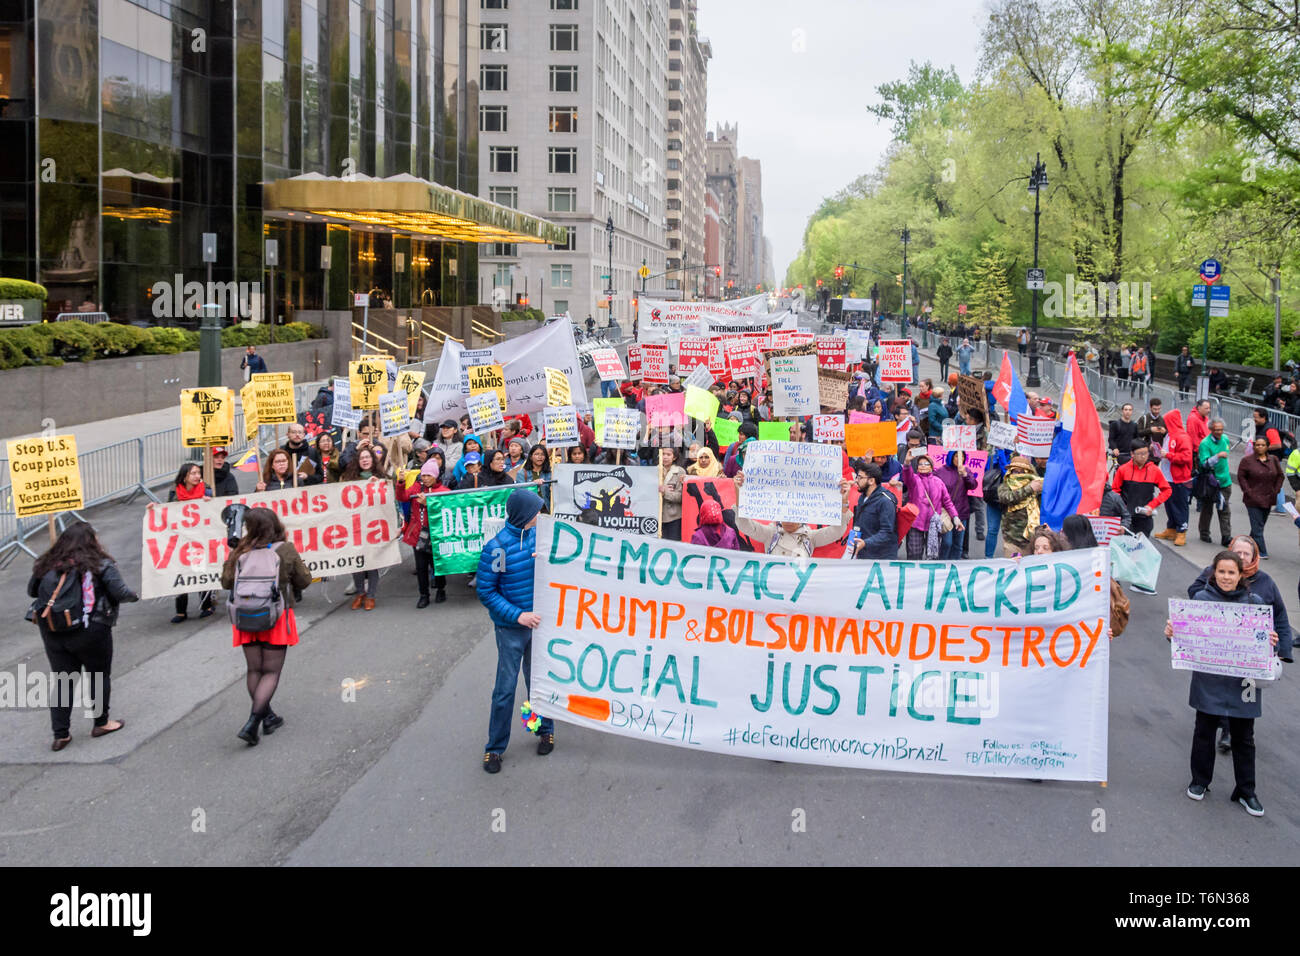 New York, United States. 01st May, 2019. Hundreds of New Yorkers gathered in front of the Trump International Hotel and Tower at Columbus Circle in celebration of May Day - an occasion often synonymous with fighting for workers' rights - in support of issues ranging from fair wages for restaurant workers, to lower tuition costs, to fighting against Trump's proposed border wall. Credit: Erik McGregor/Pacific Press/Alamy Live News Stock Photo